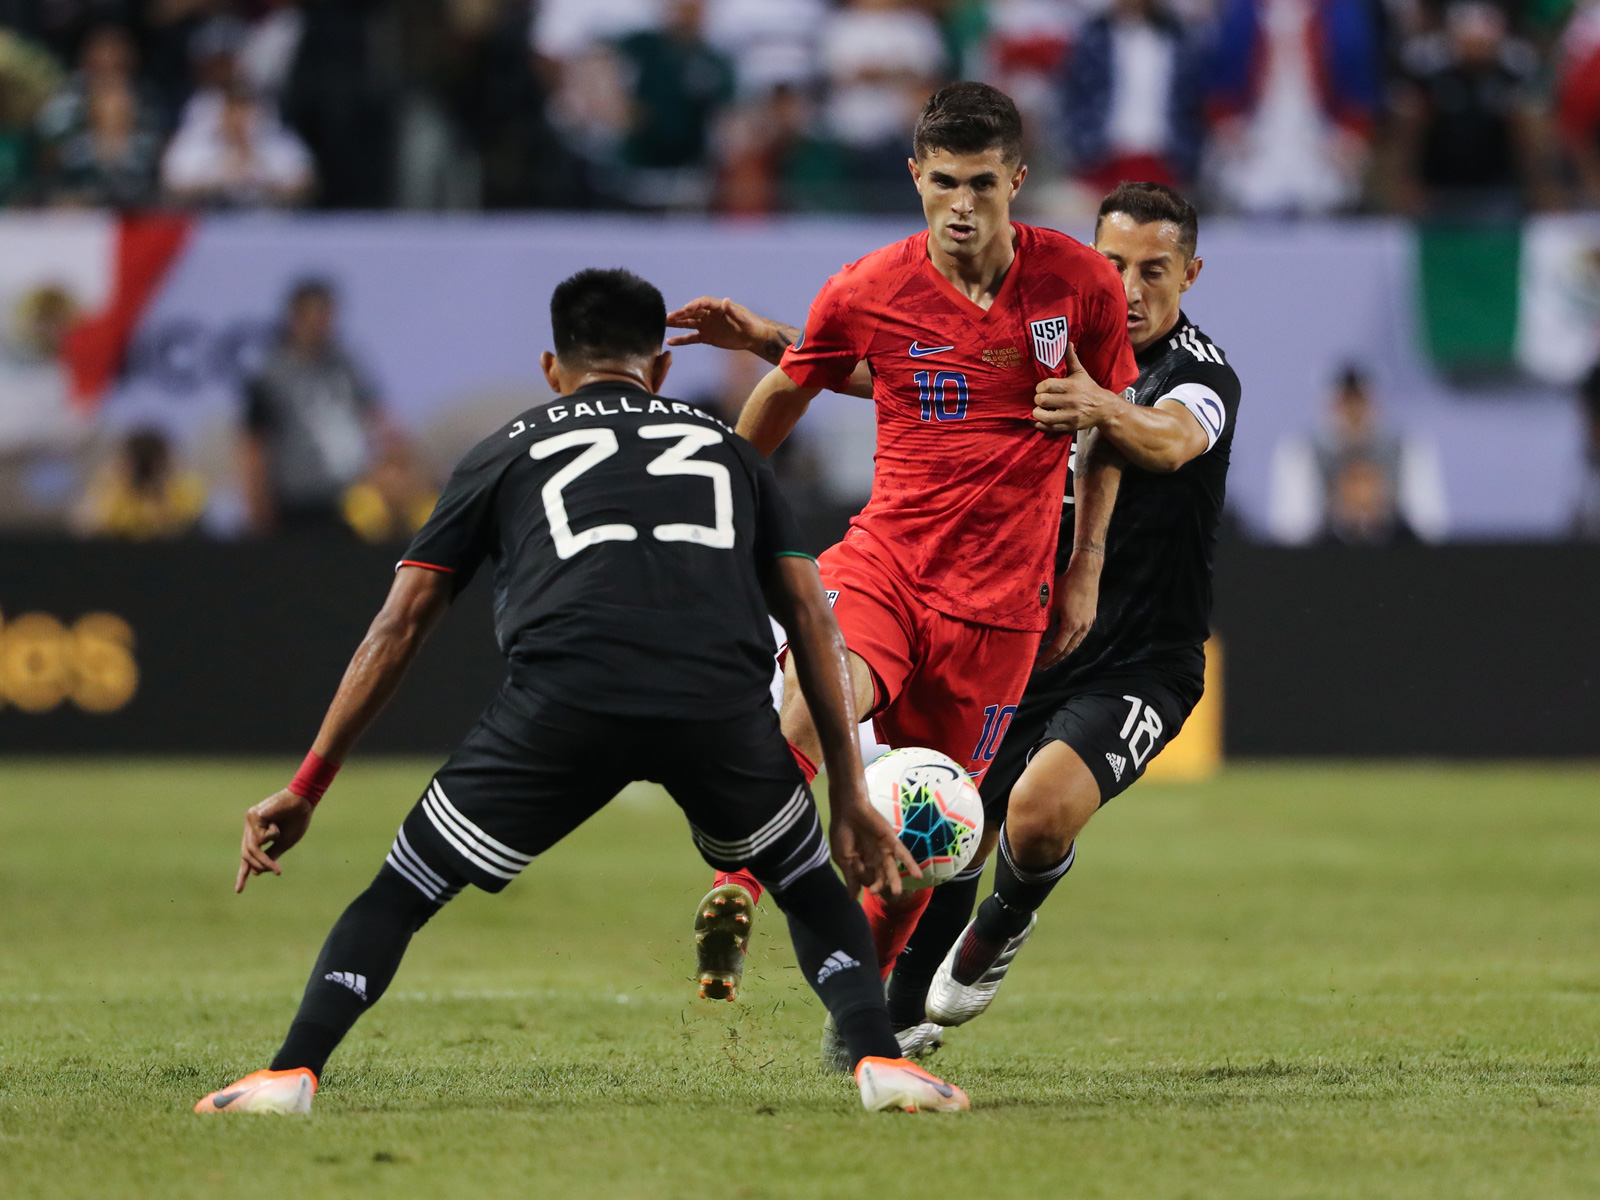 Christian Pulisic and the USA fell to Mexico in the Gold Cup